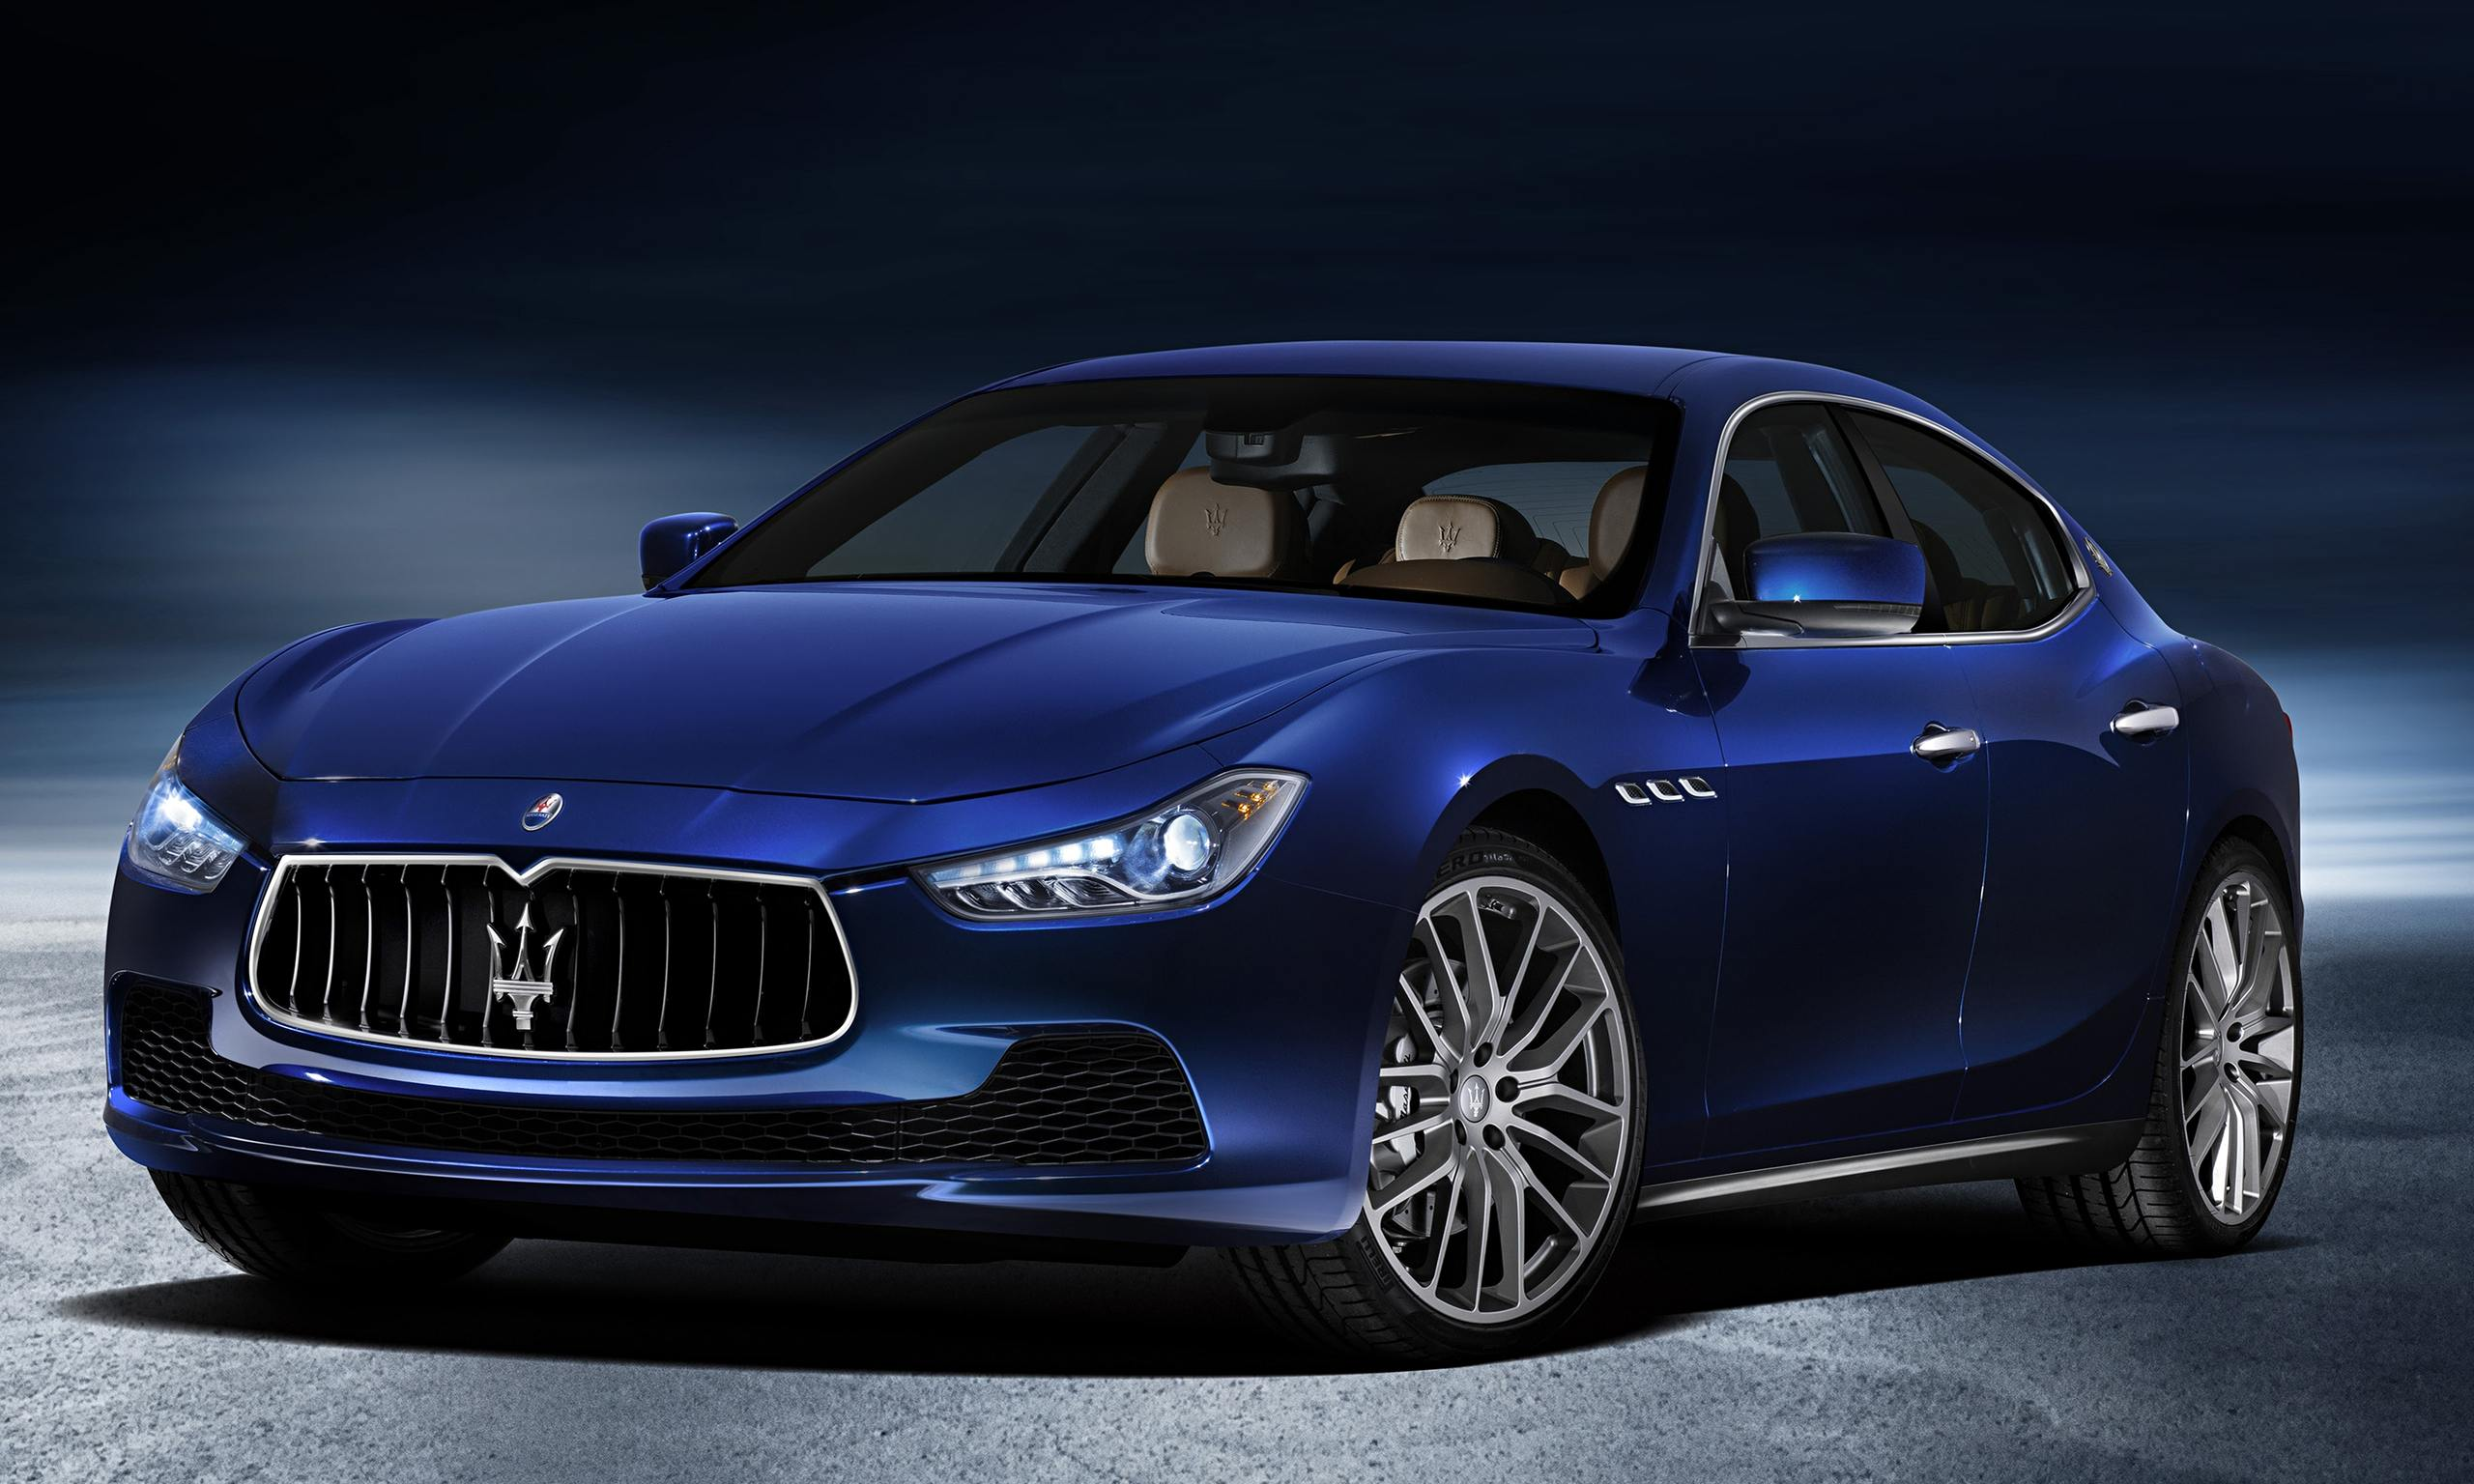 maserati ghibli car review martin love technology. Black Bedroom Furniture Sets. Home Design Ideas